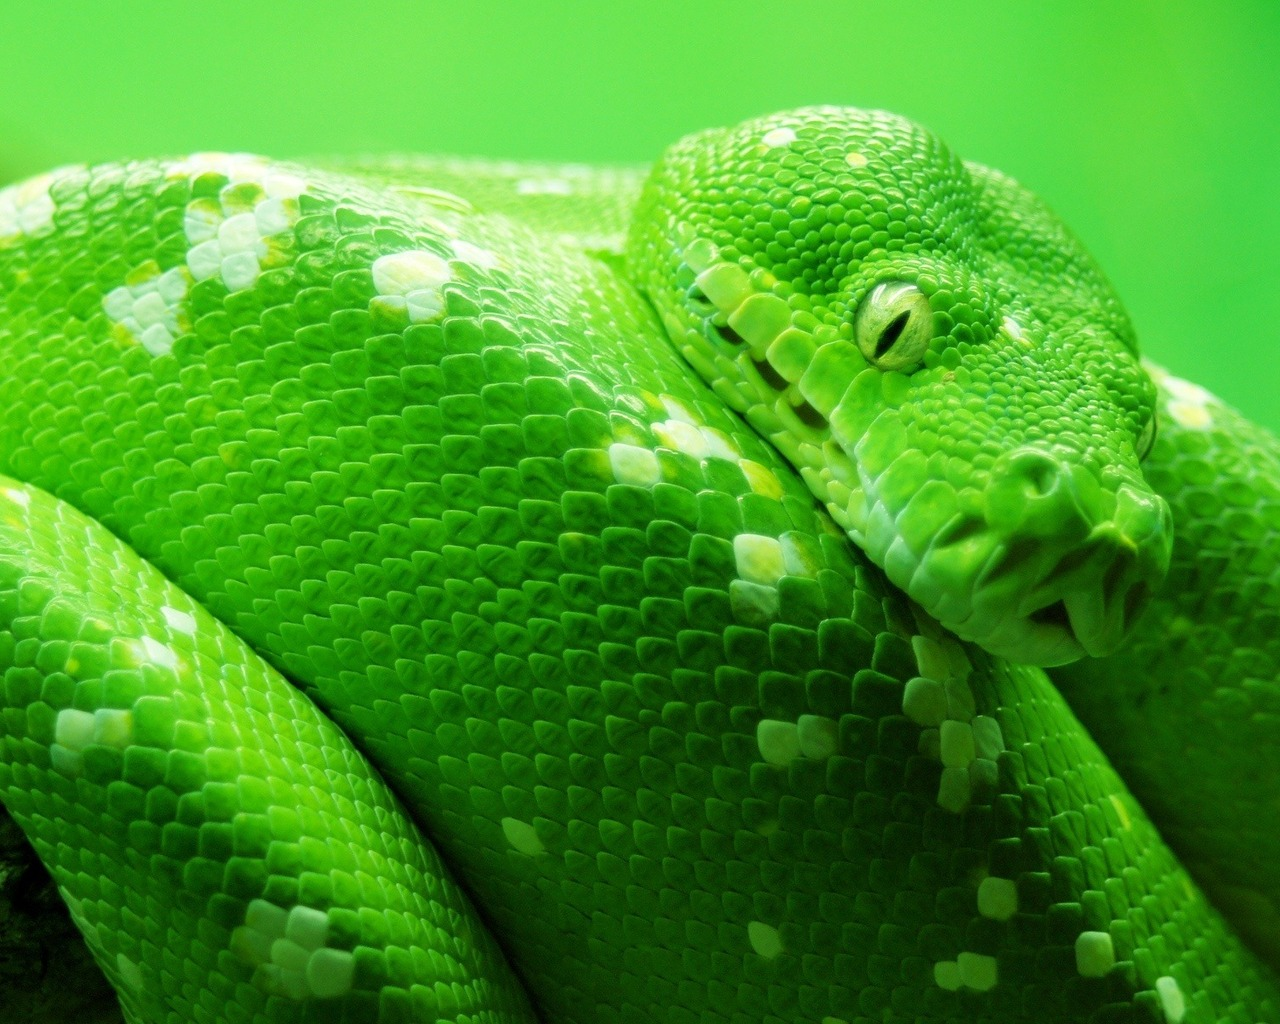 another-green-snake